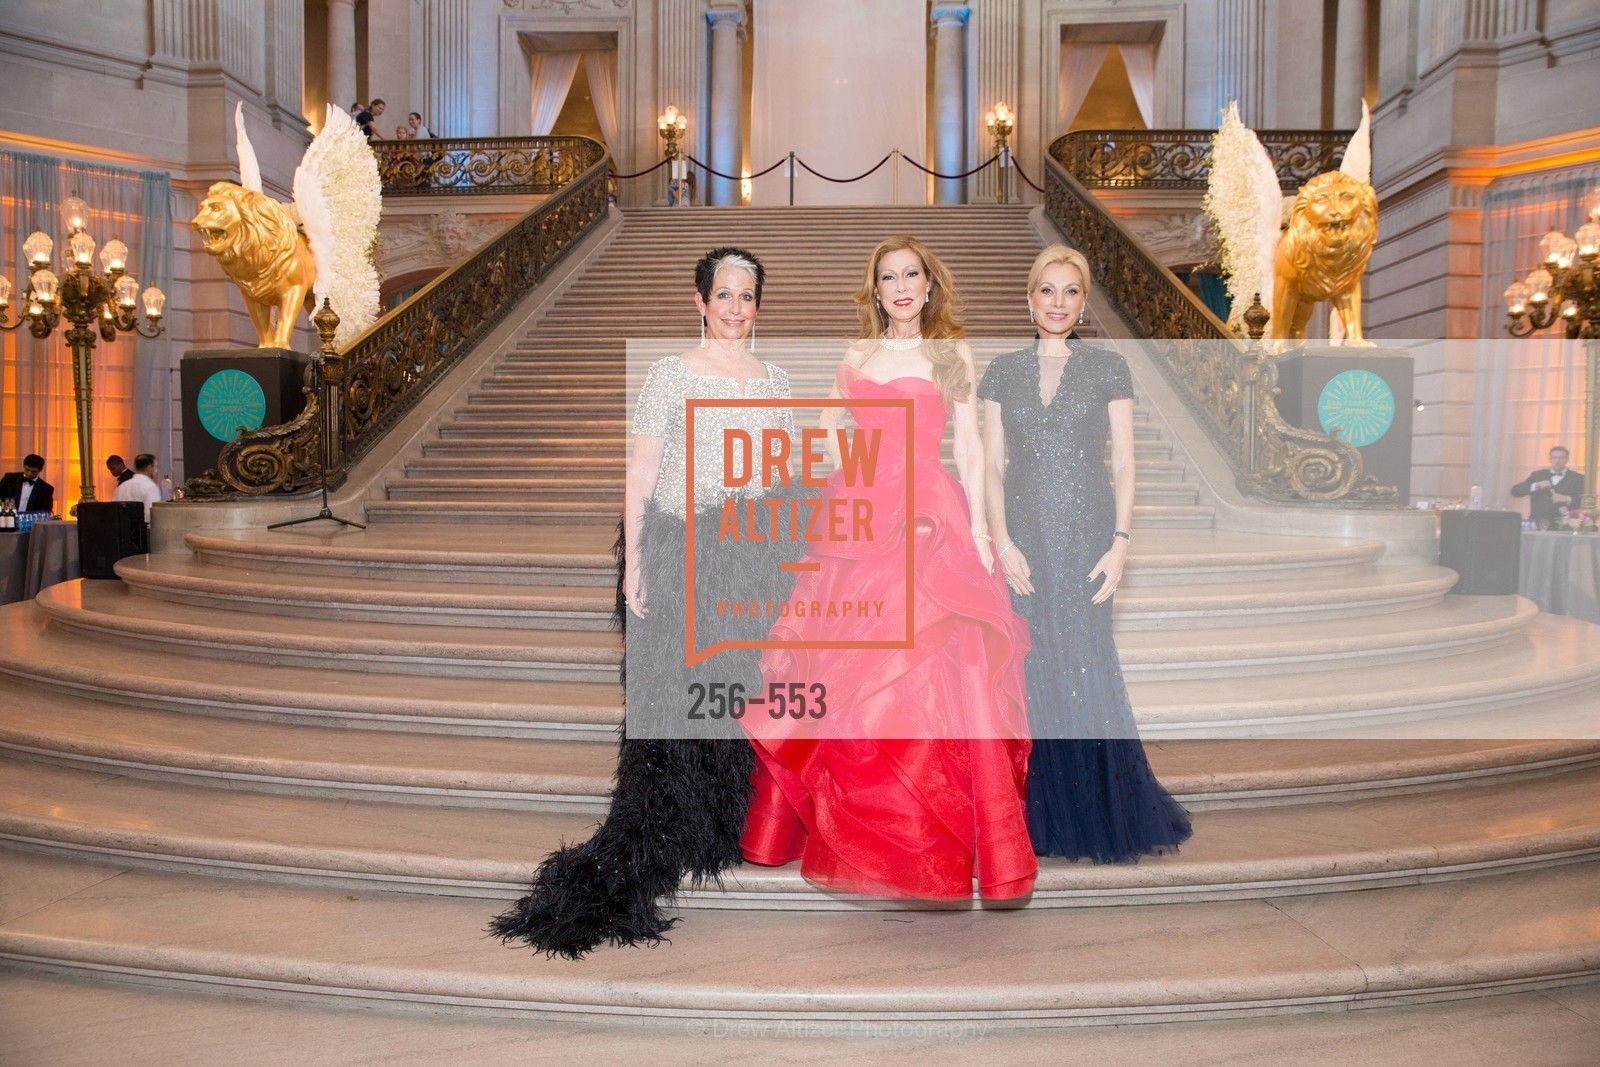 Karen Kubin, Teresa Medearis, Cynthia Schreuder, SAN FRANCISCO OPERA'S 92nd Opera Ball 2014: PASSIONE, Opera House, September 5th, 2014,Drew Altizer, Drew Altizer Photography, full-service agency, private events, San Francisco photographer, photographer california